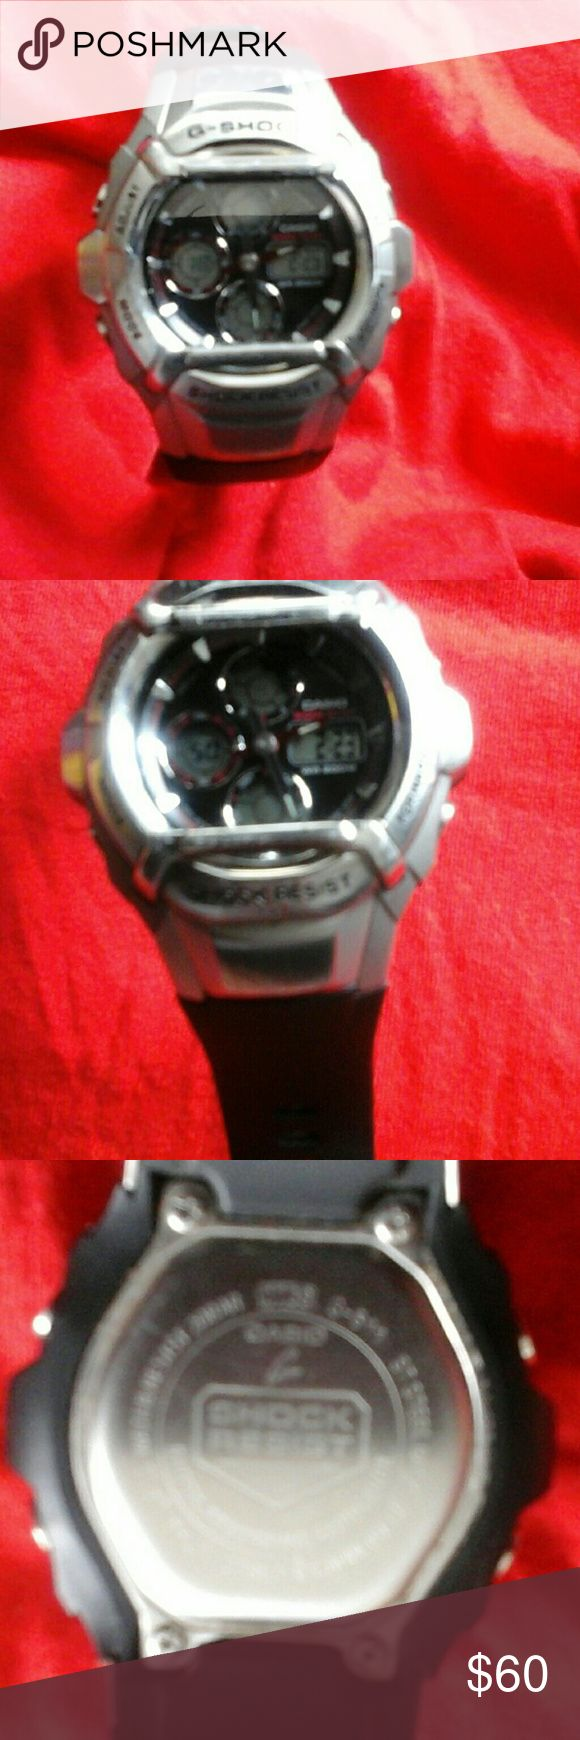 G -Shock Watch shock resist Accessories Watches